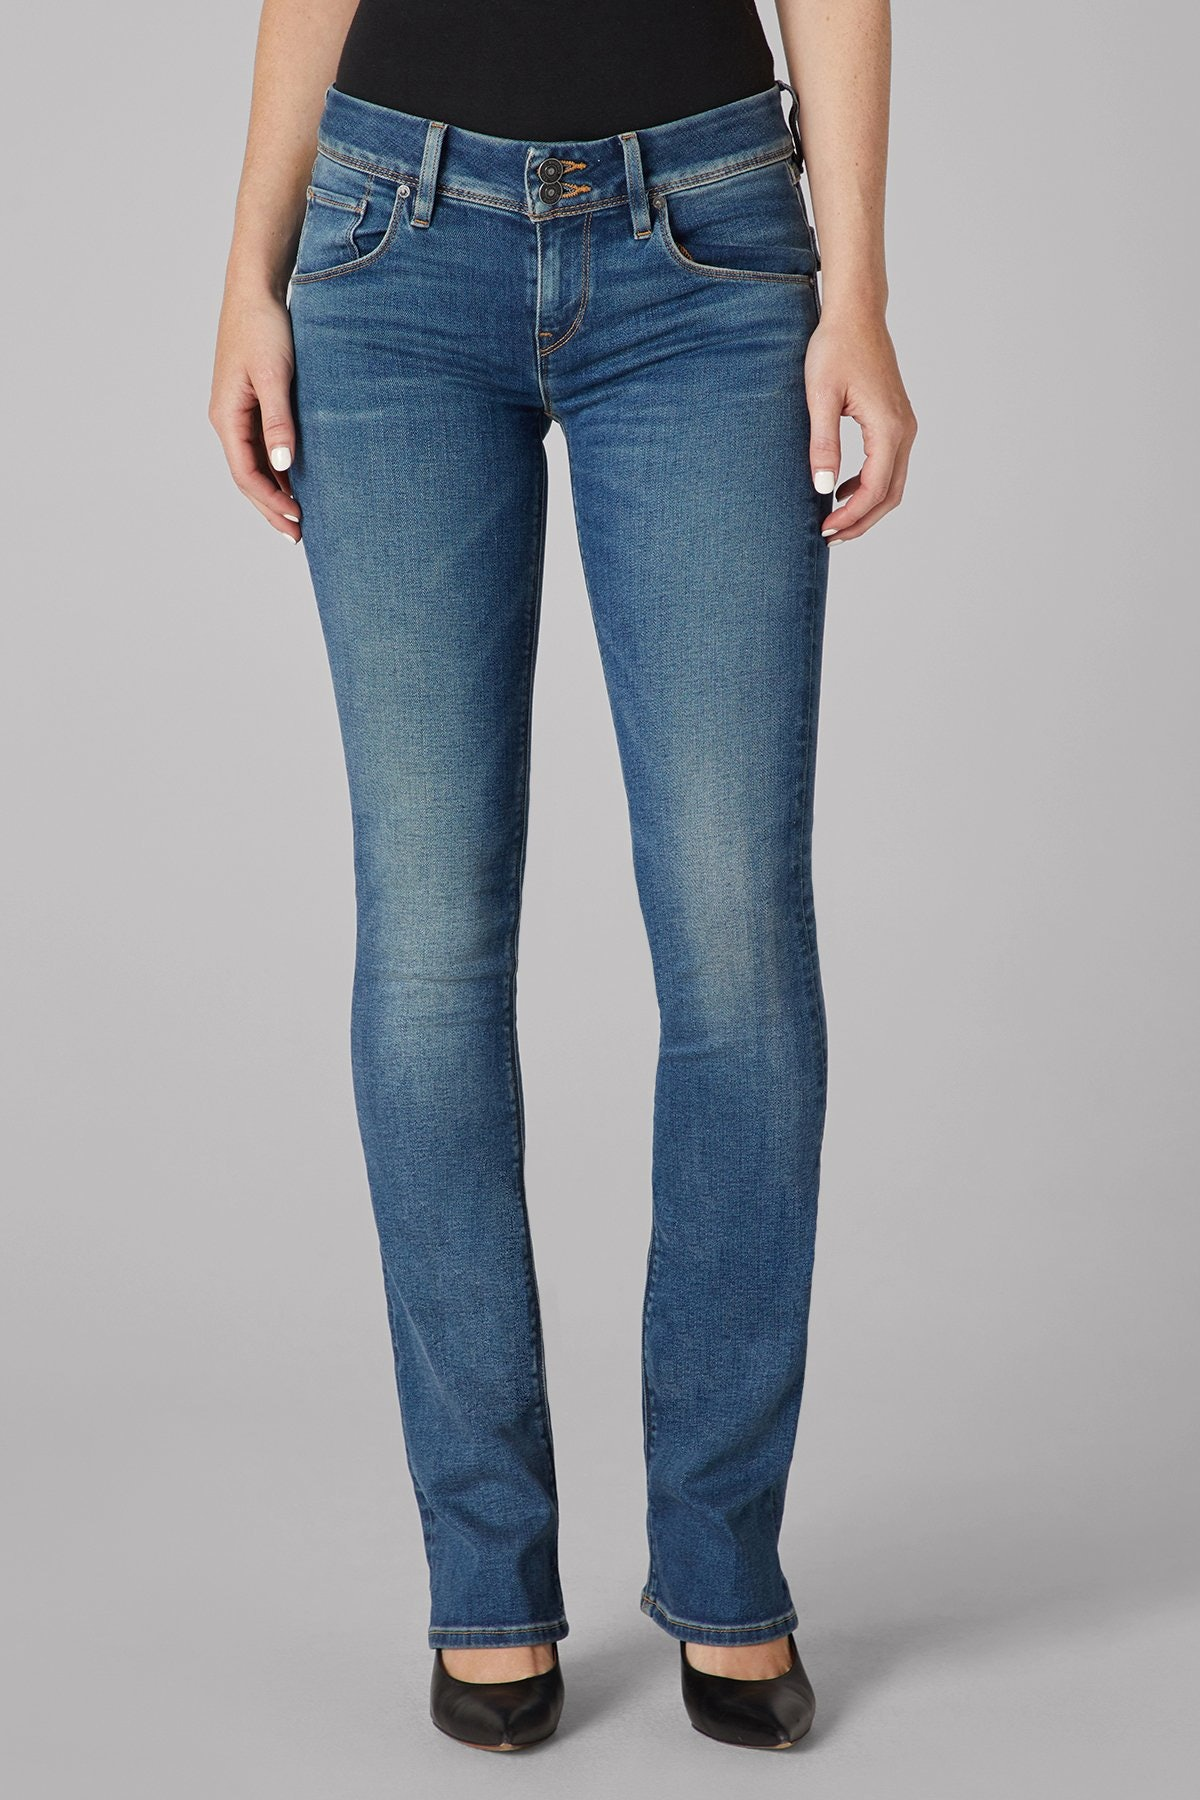 Beth Mid-Rise Baby Bootcut Jean from HUDSON JEANS.